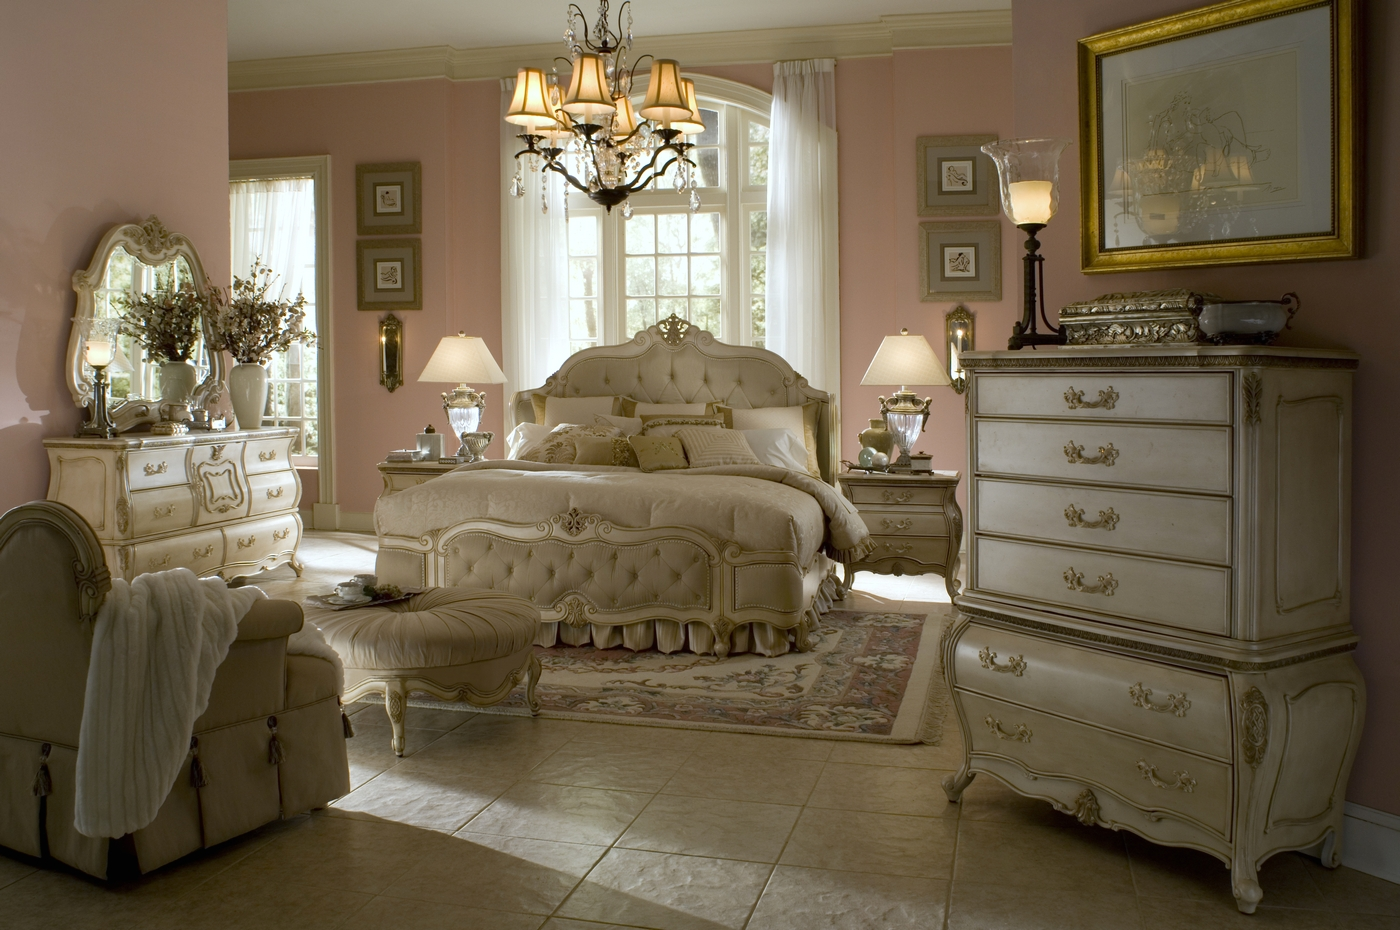 Antique white bedroom set aico bedroom set - White vintage bedroom furniture sets ...